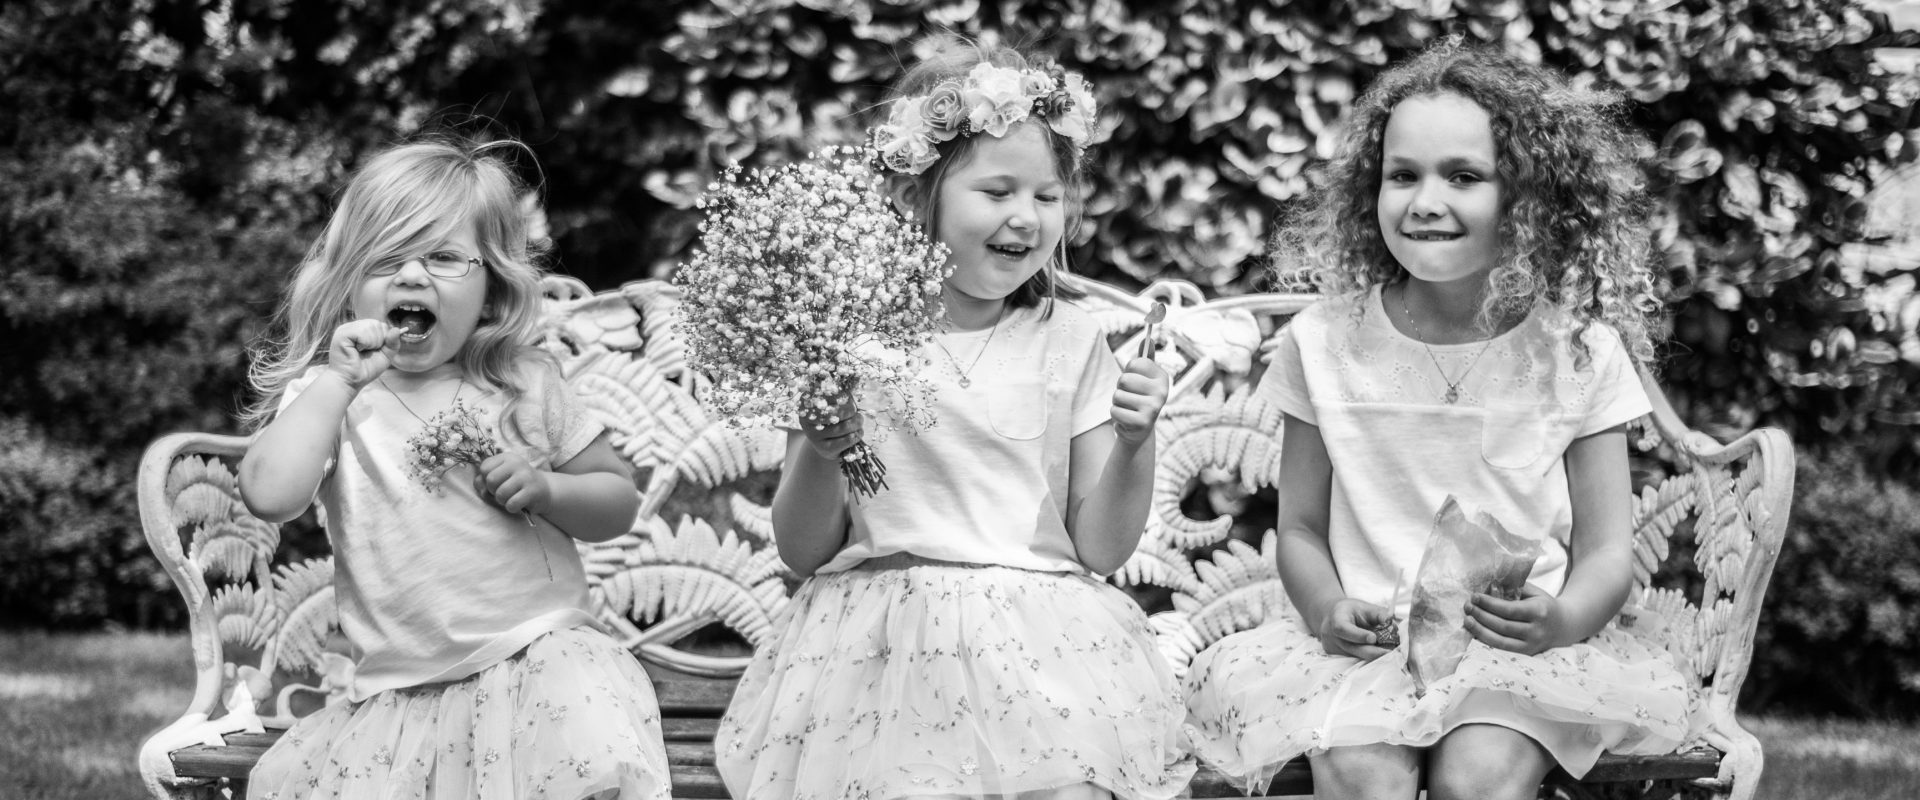 black and white shot of three flowergirls having fun sat on bench